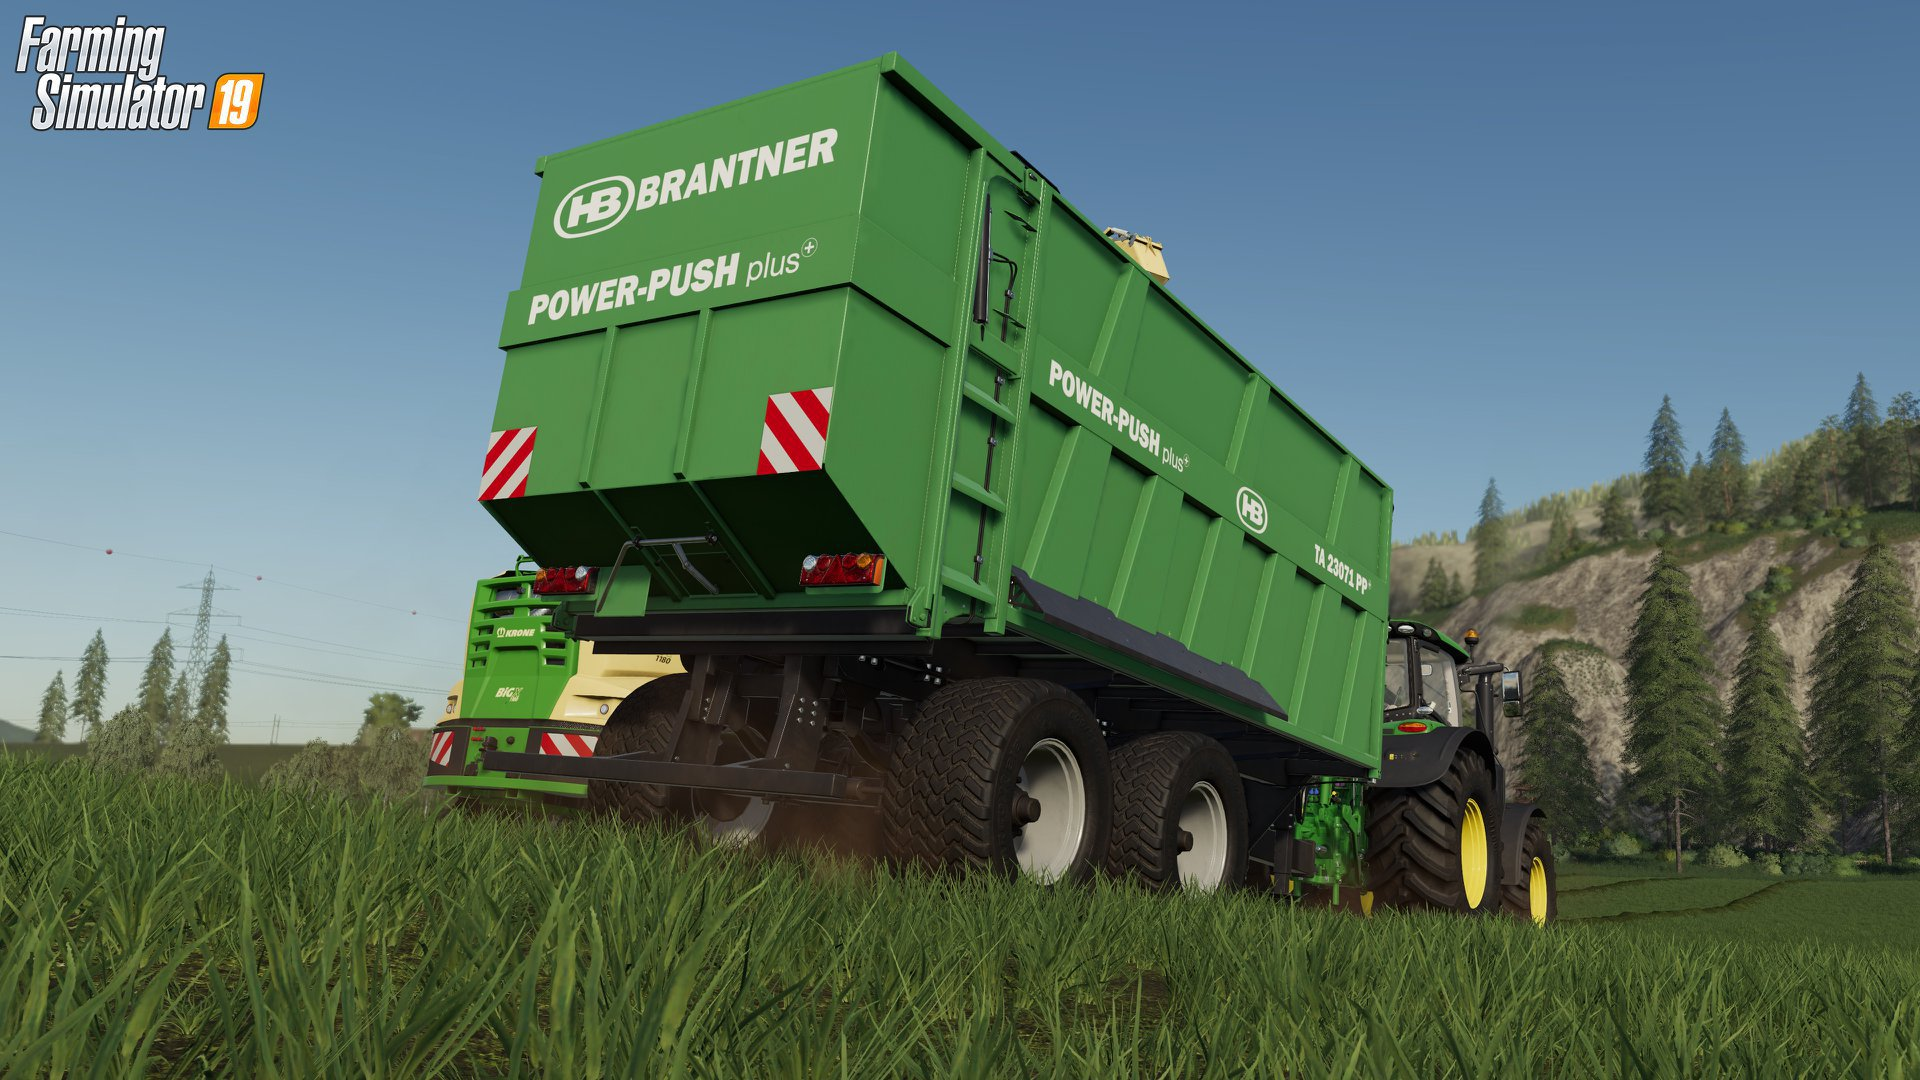 [LS19] GIANTS Mods diese Woche - GIANTS Software - Forum